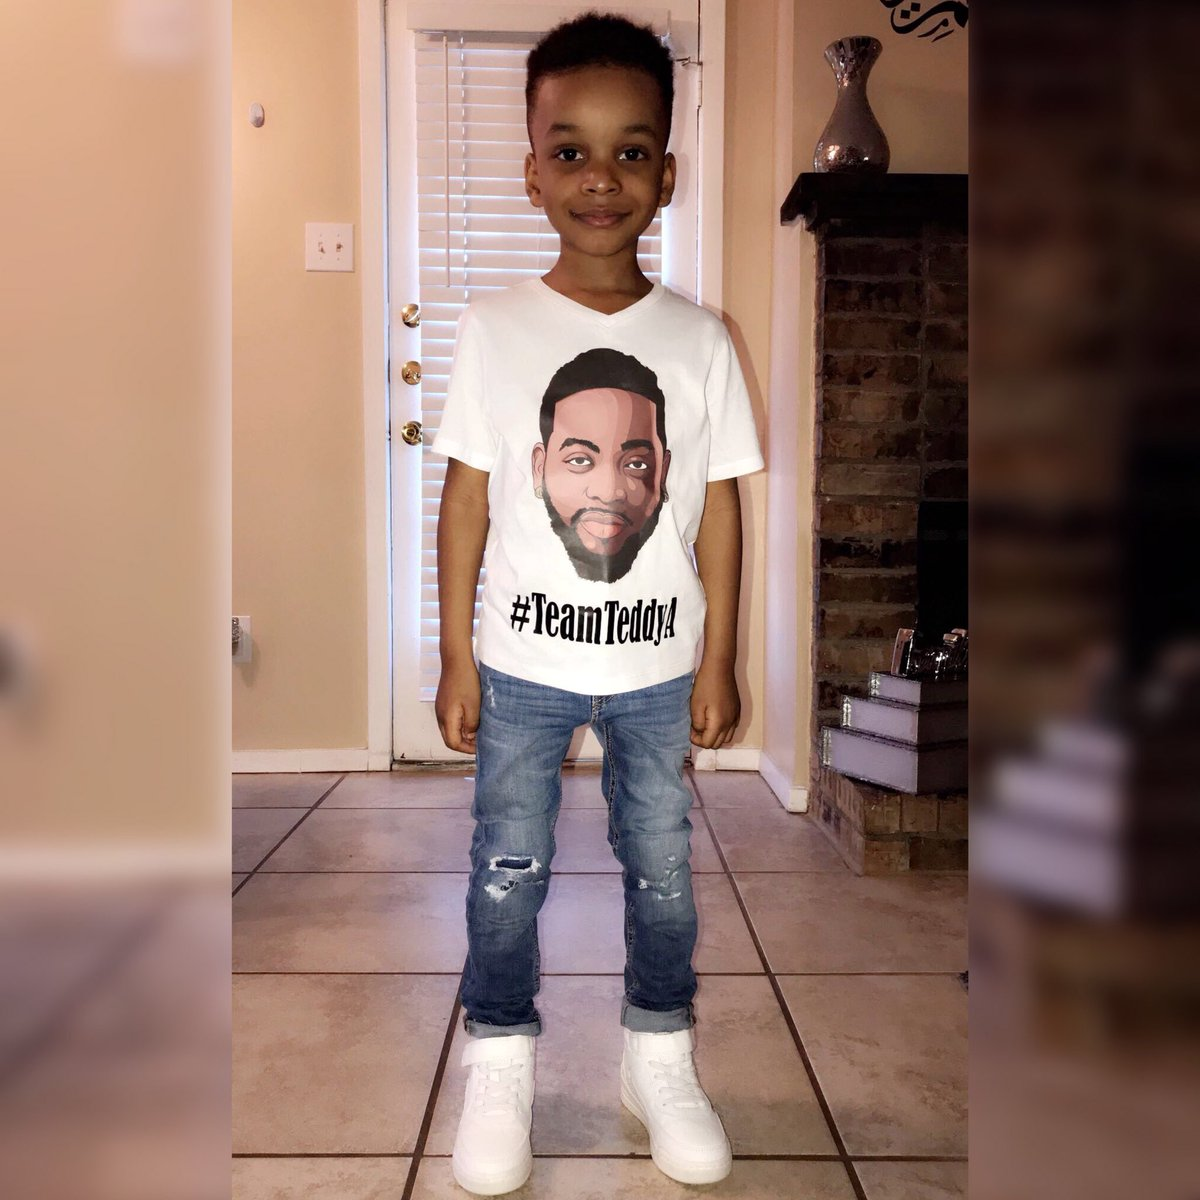 BBNaija: Teddy A's Baby Mama Shares Photos Of Their Son Rocking His Campaign T-shirt